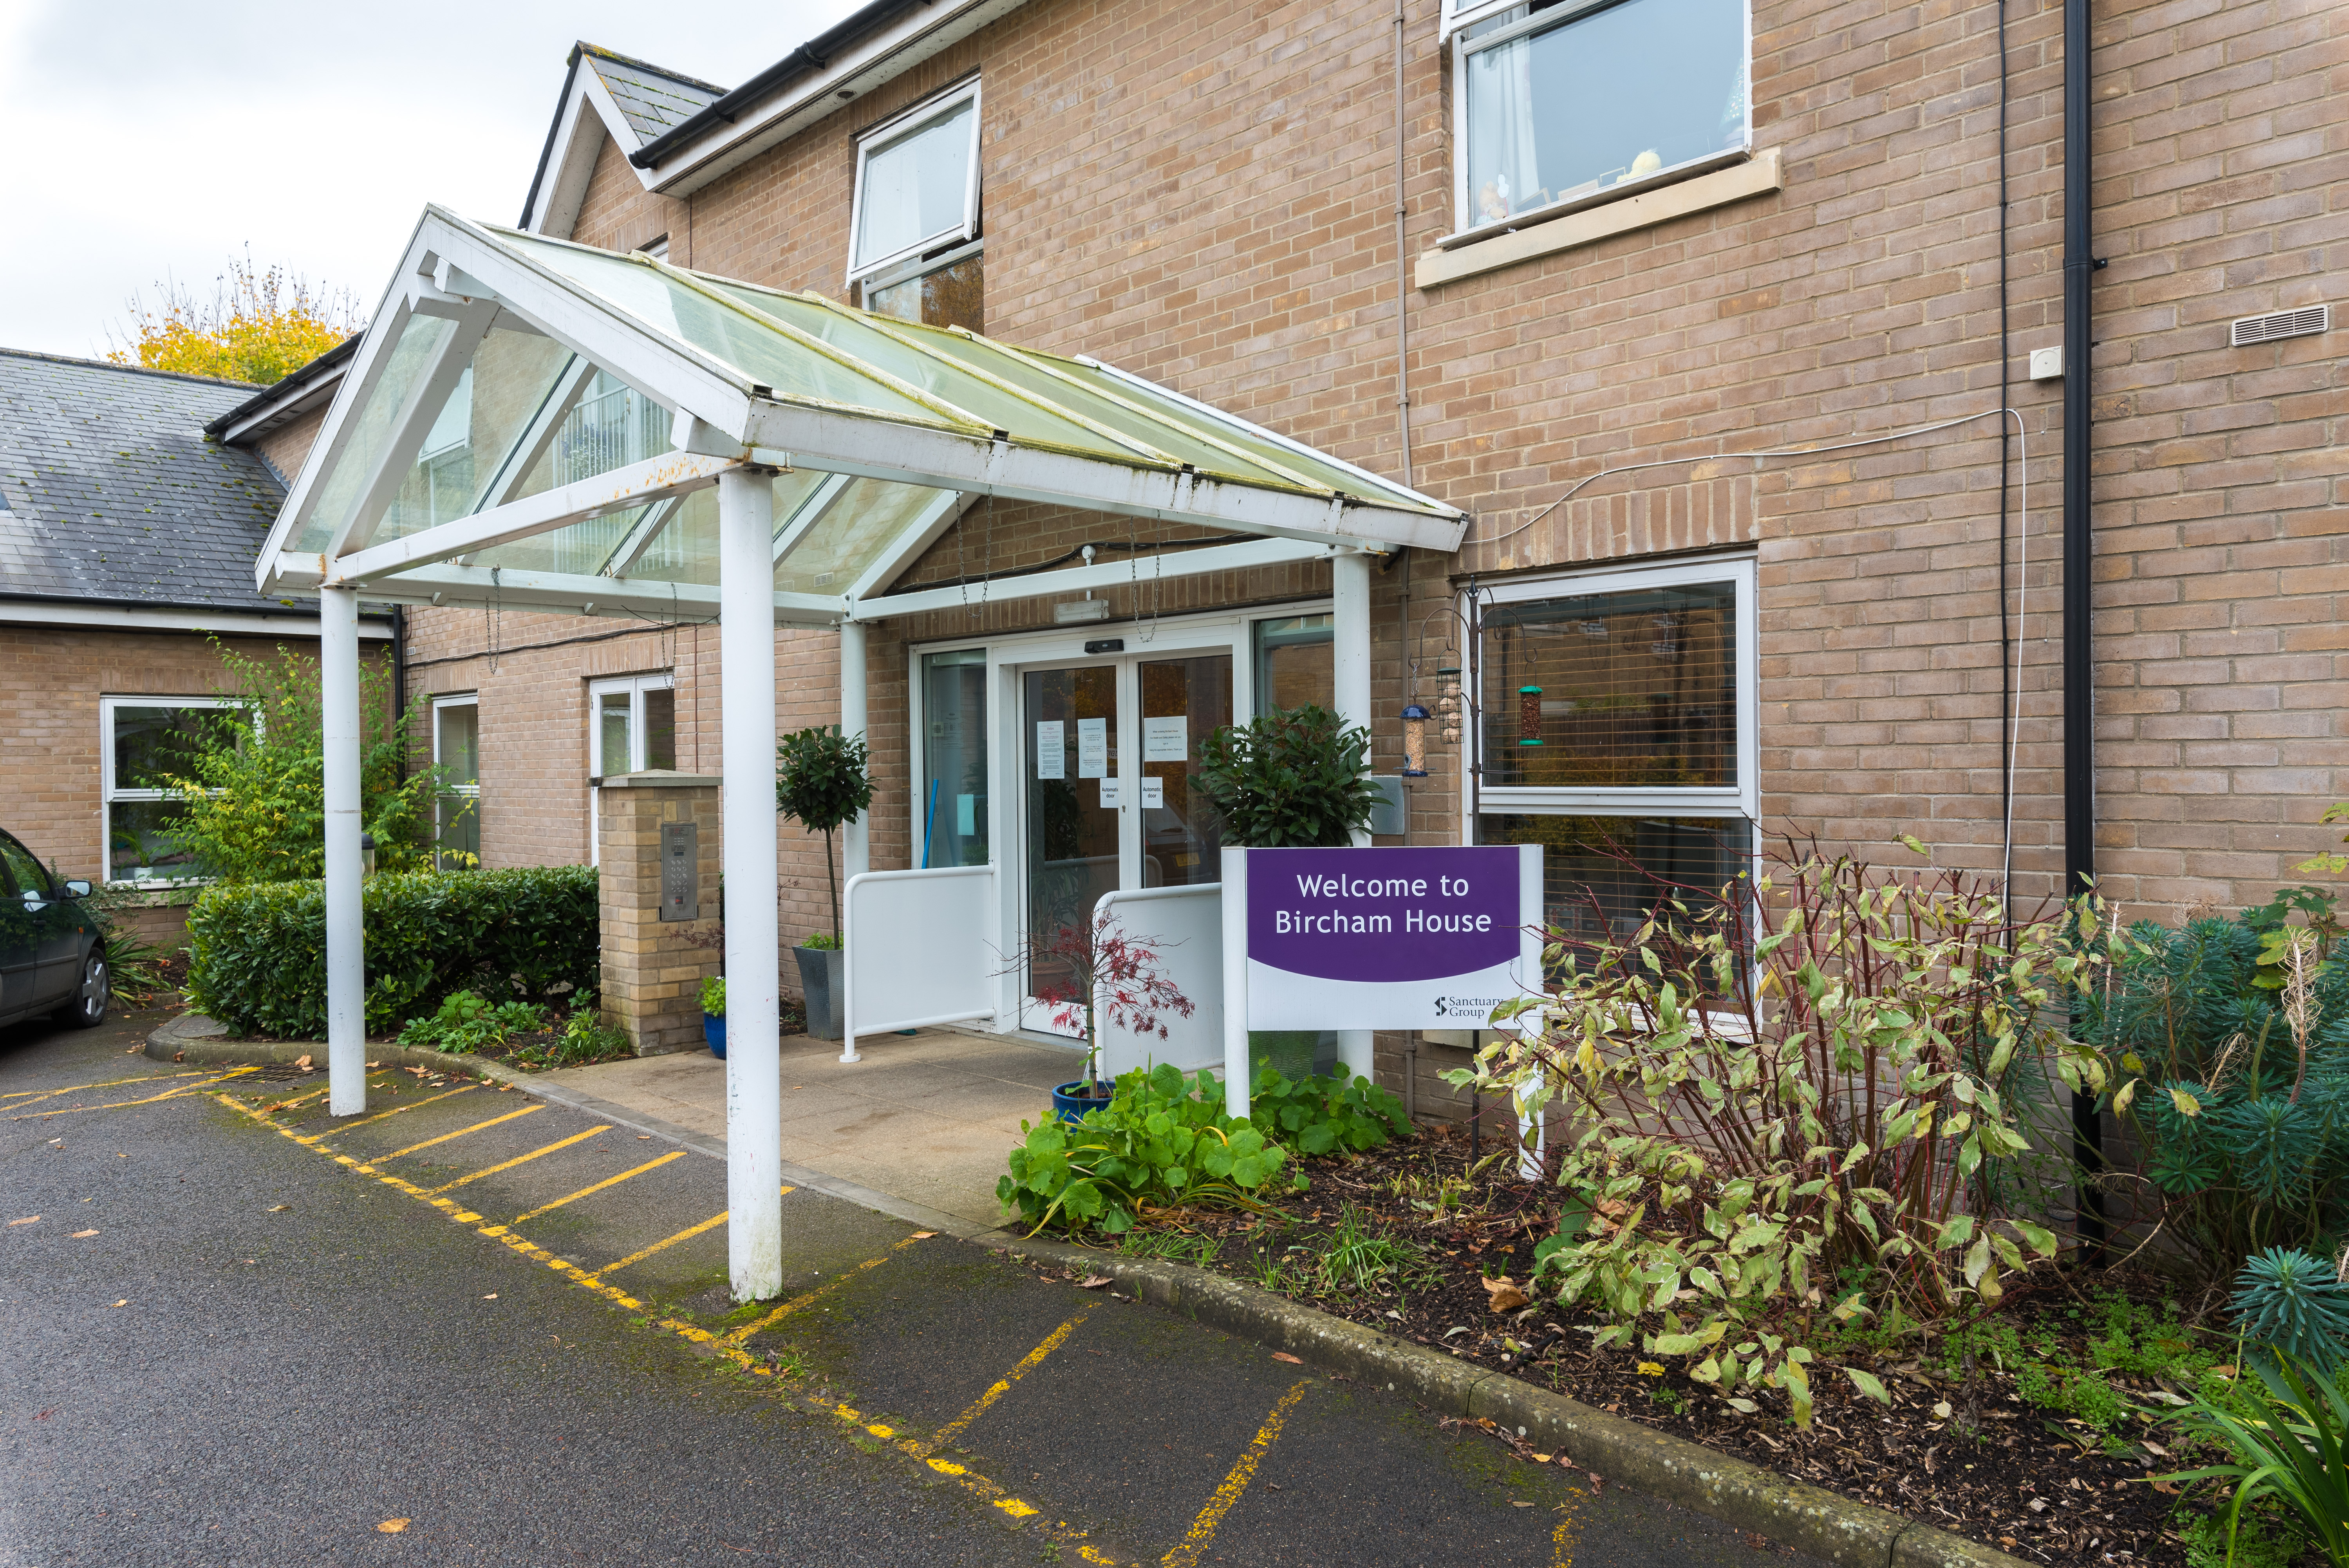 Bircham House is an Axiom care scheme which has just improved on the latest CQC report.